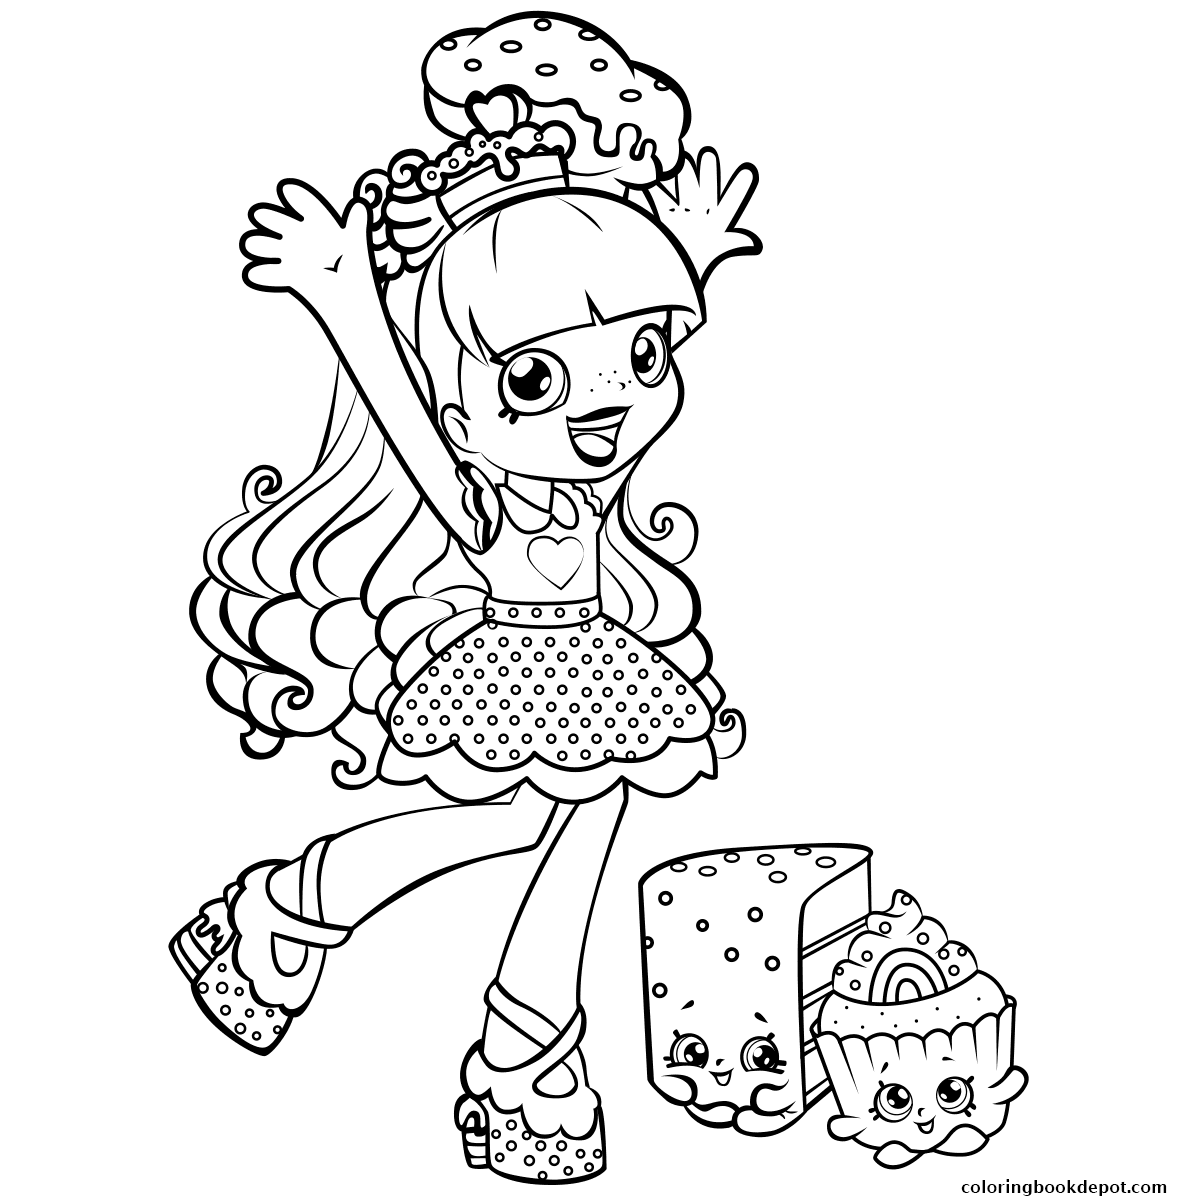 1200x1200 Scarce Lippy Lips Shopkins Coloring Page Pages